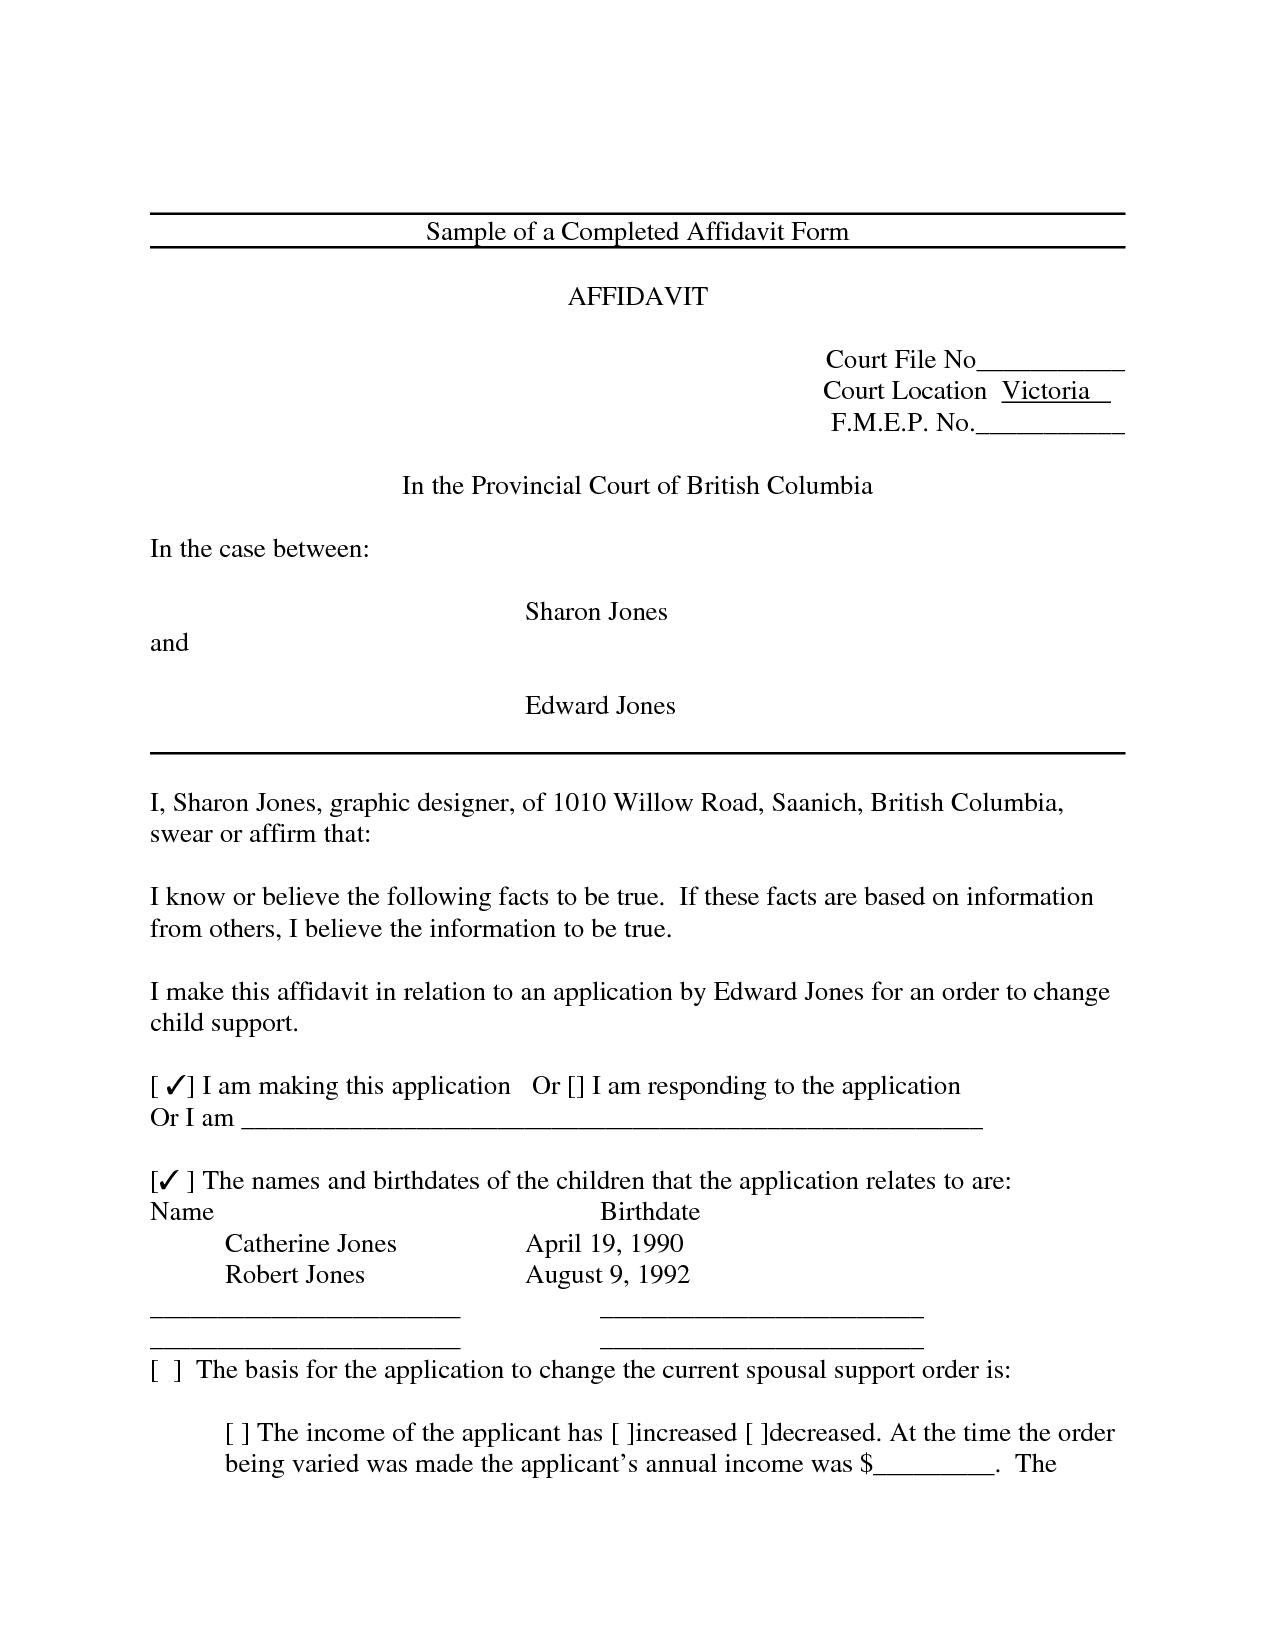 Affidavit Letter Format team leader resume format indemnity form – Affidavit Sample Format